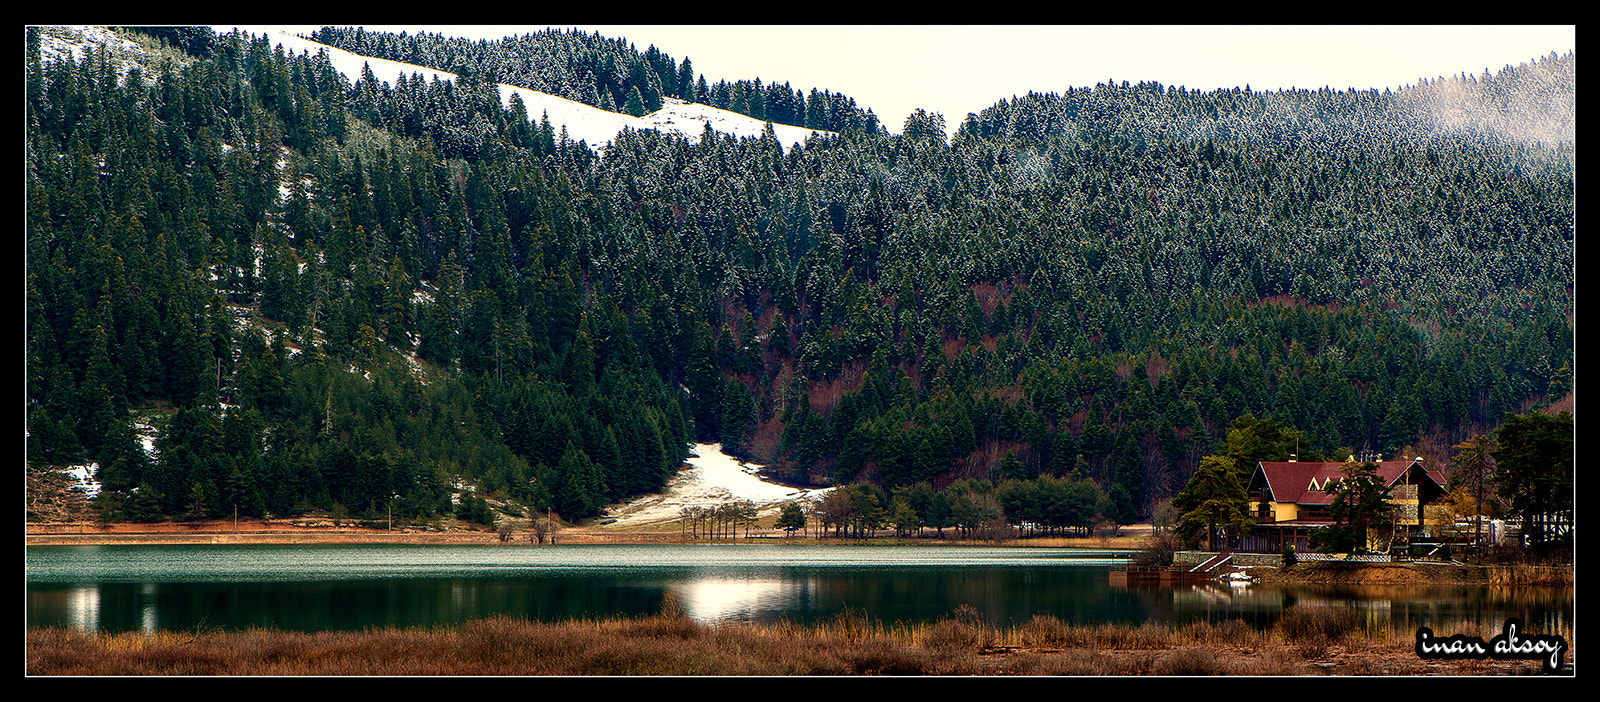 Photograph Lake Abant Nature Park by Inan Aksoy on 500px